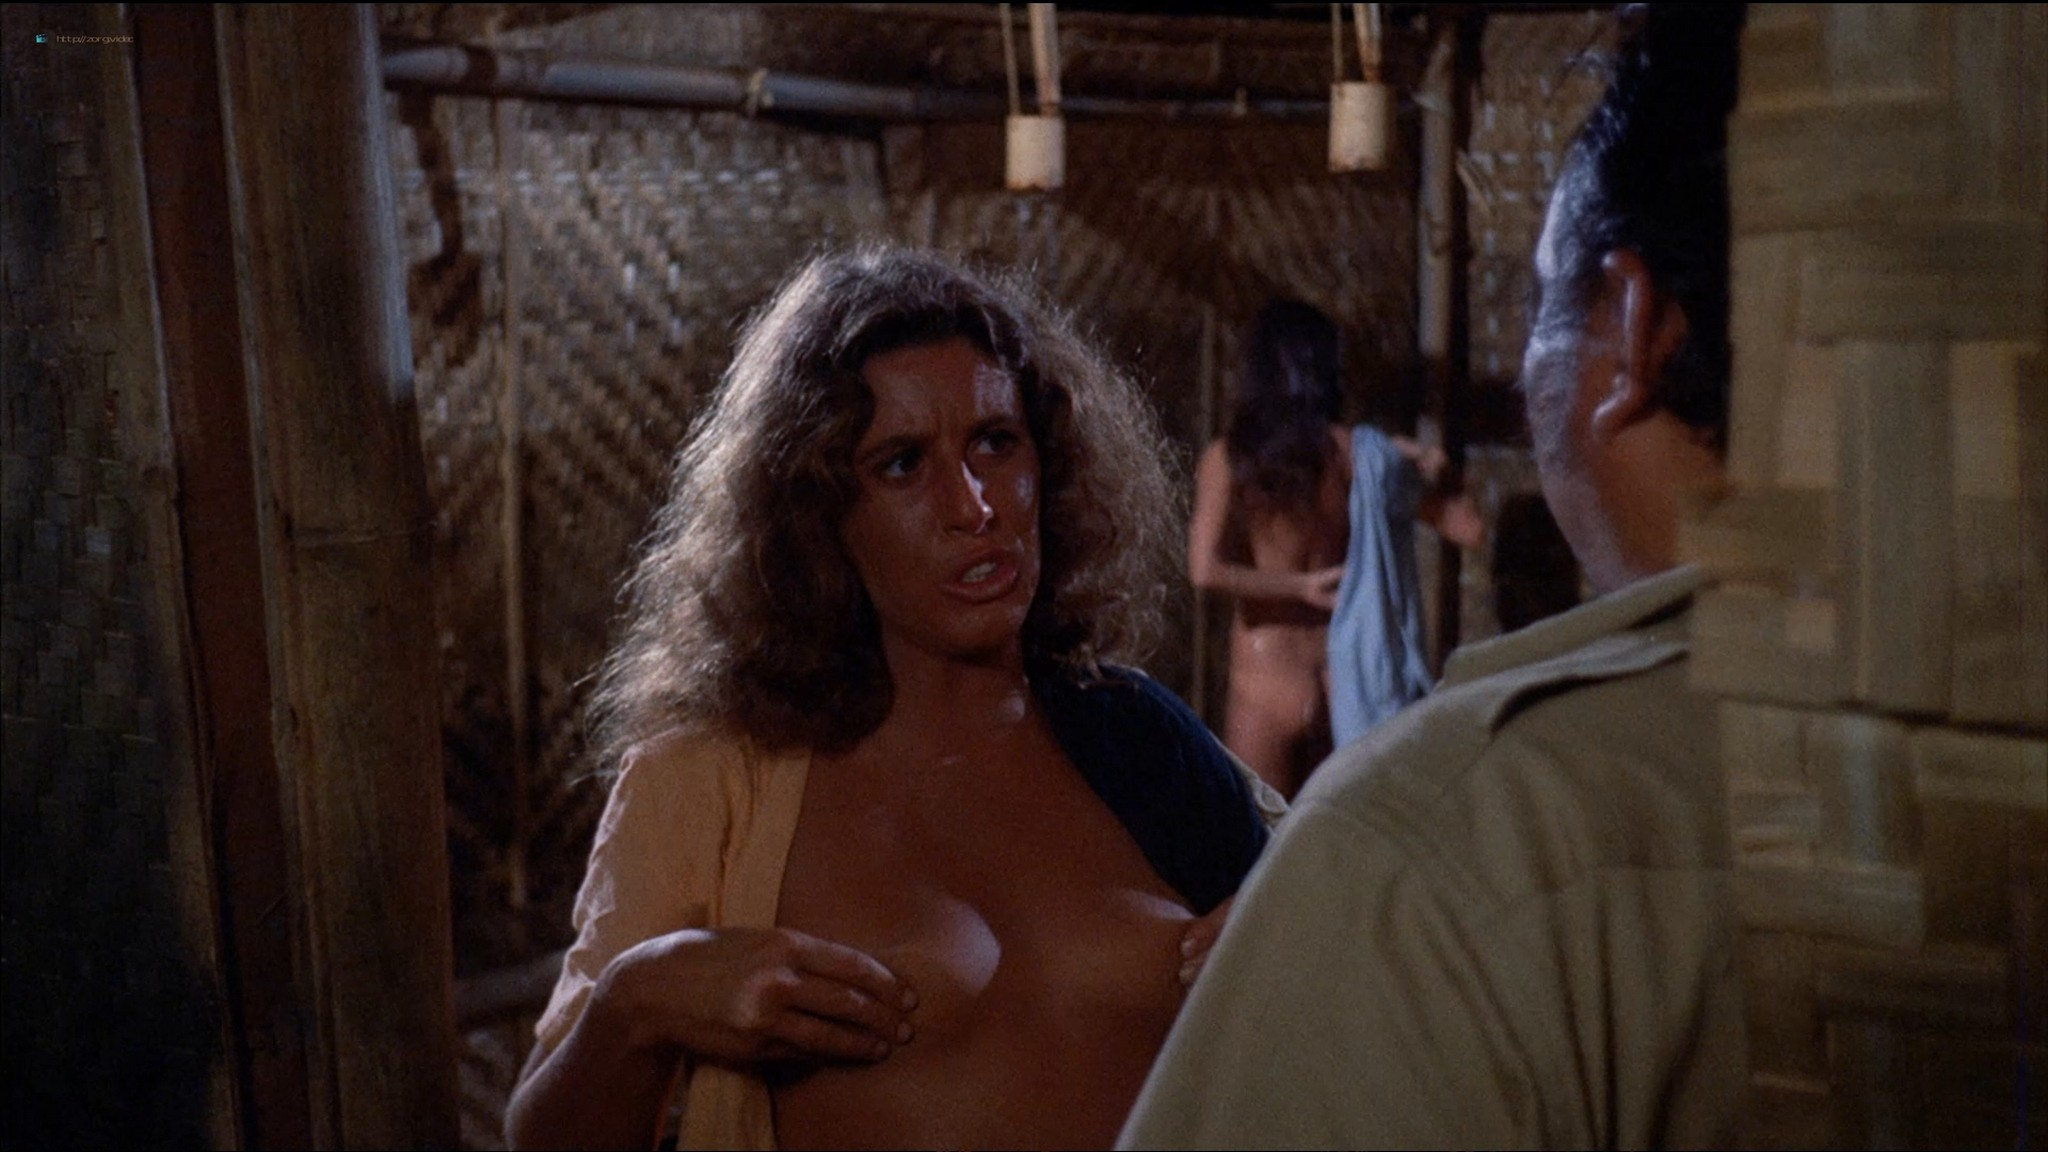 Pam Grier nude Anita Ford nude bush, others nude - The Big Bird Cage (1972) HD 1080p BluRay(r) (11)